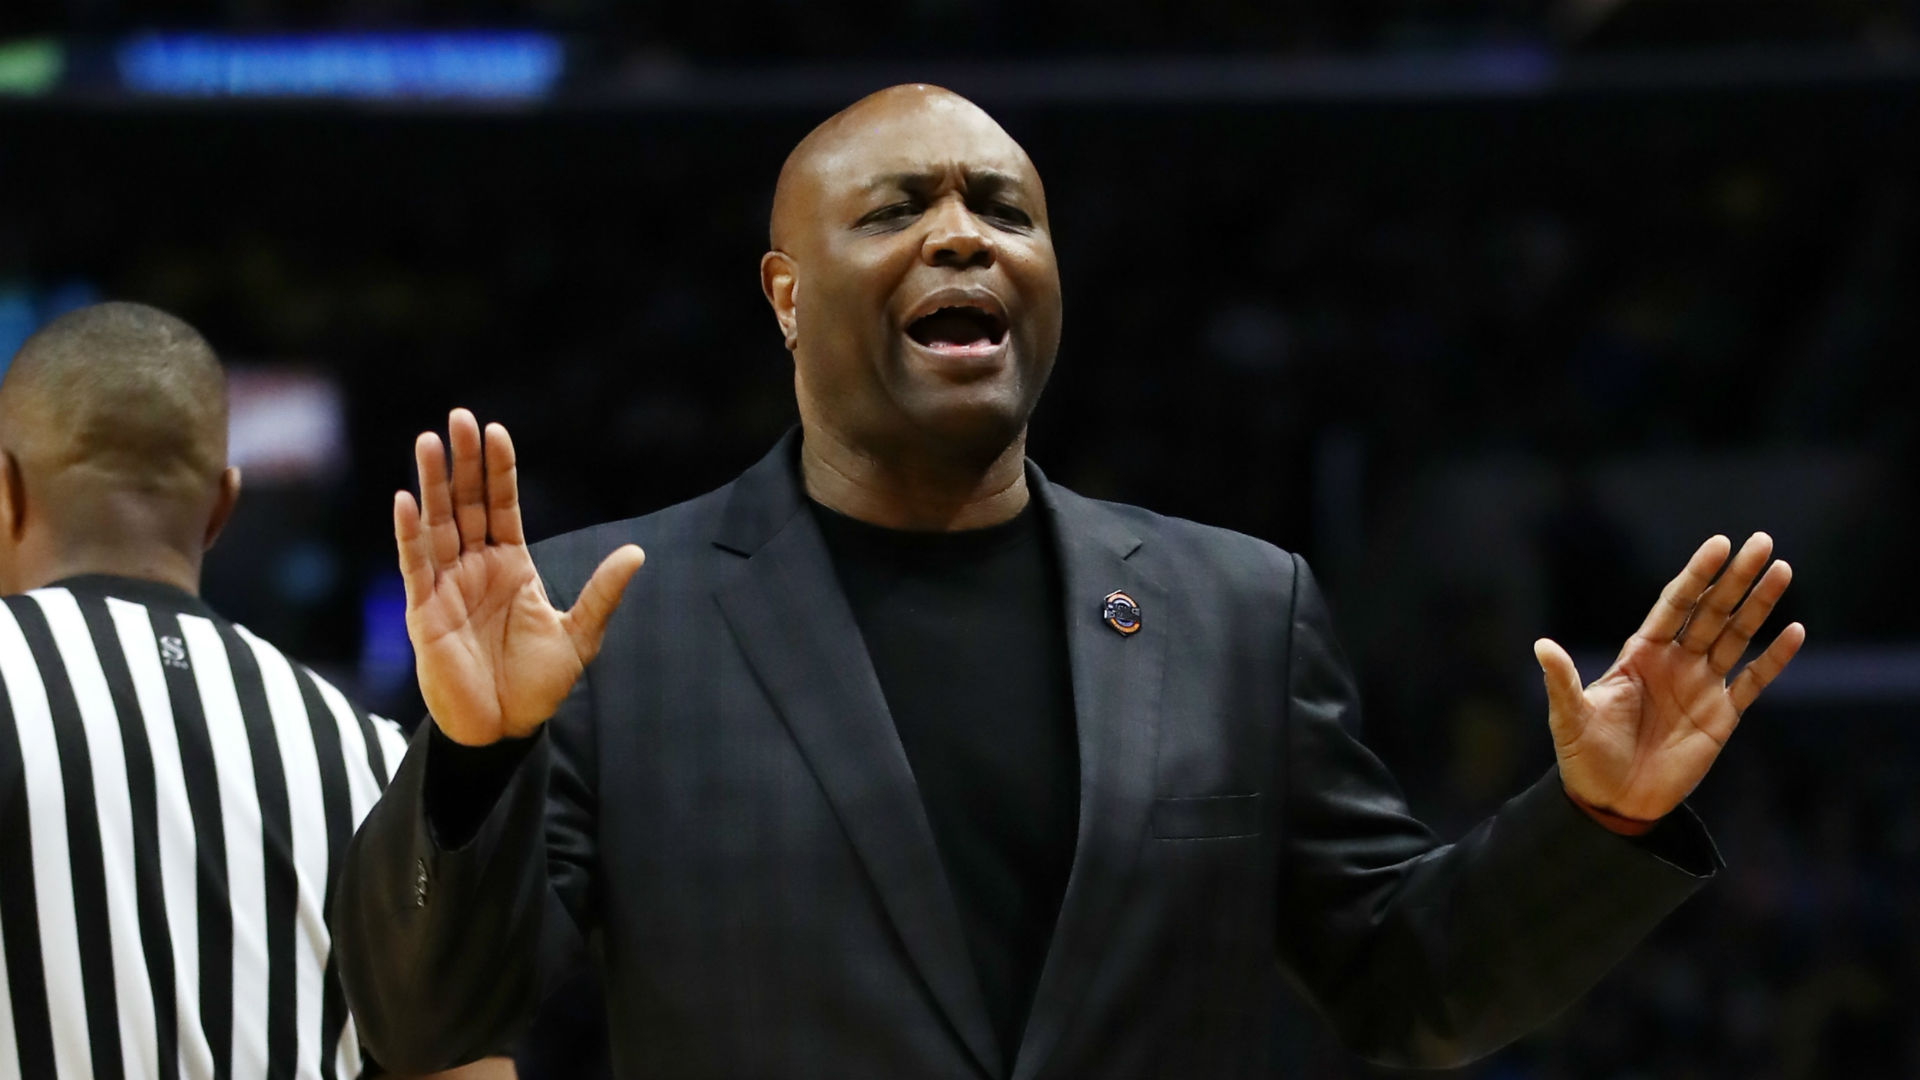 Florida State coach Leonard Hamilton releases statement regarding CBS interview